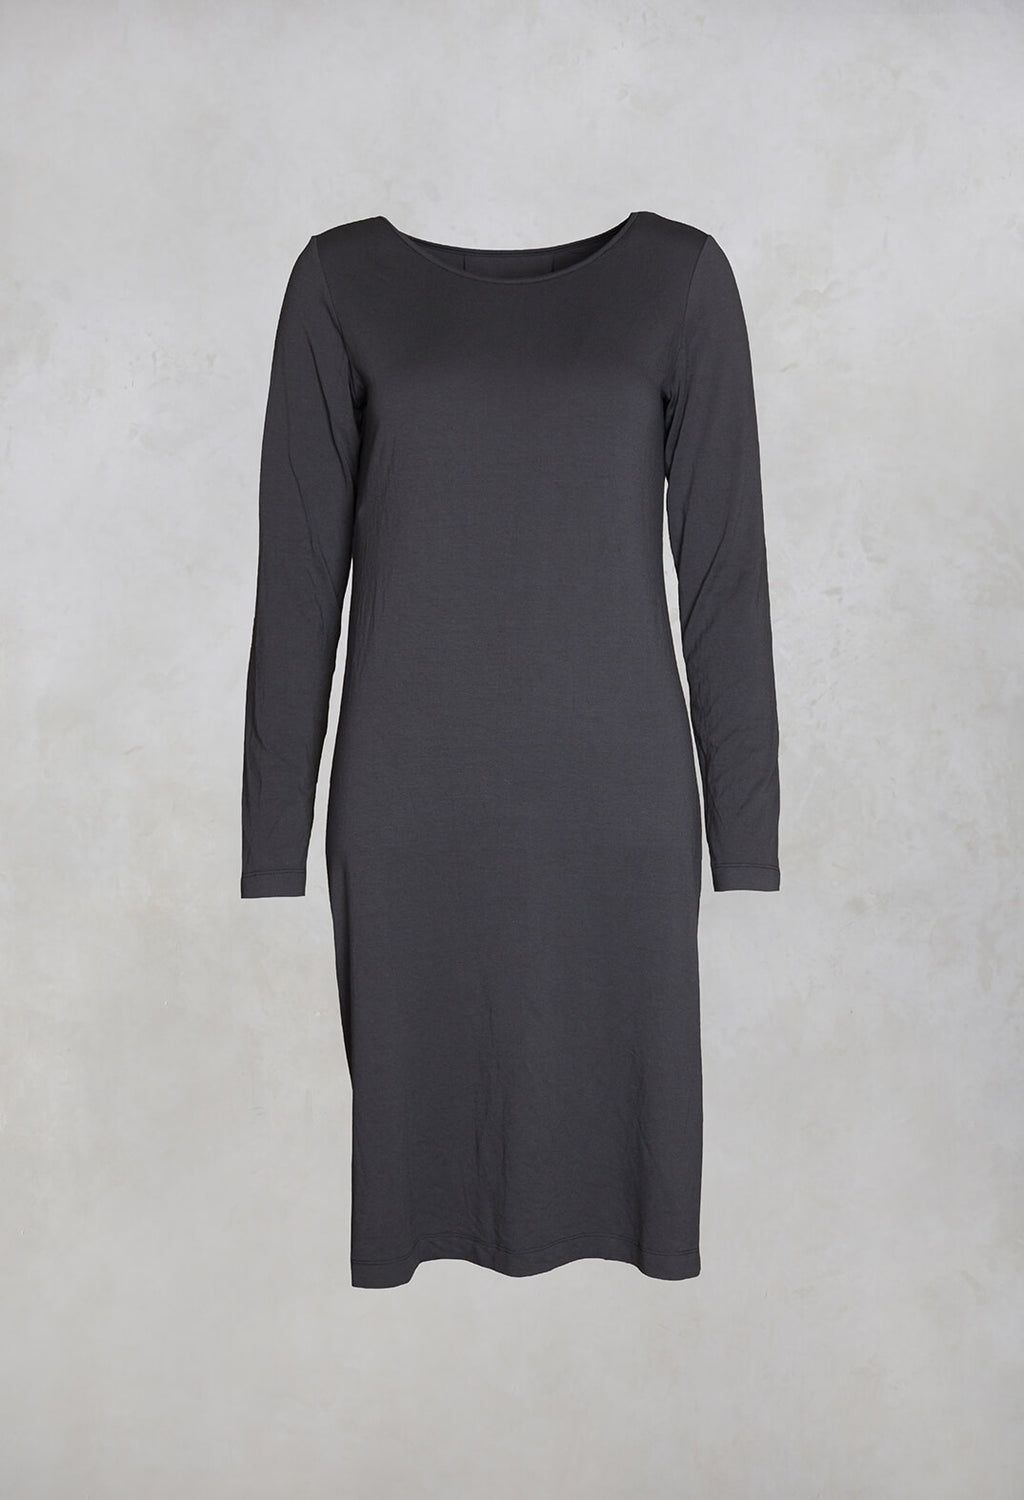 Long Sleeved Jersey Dress in Grey